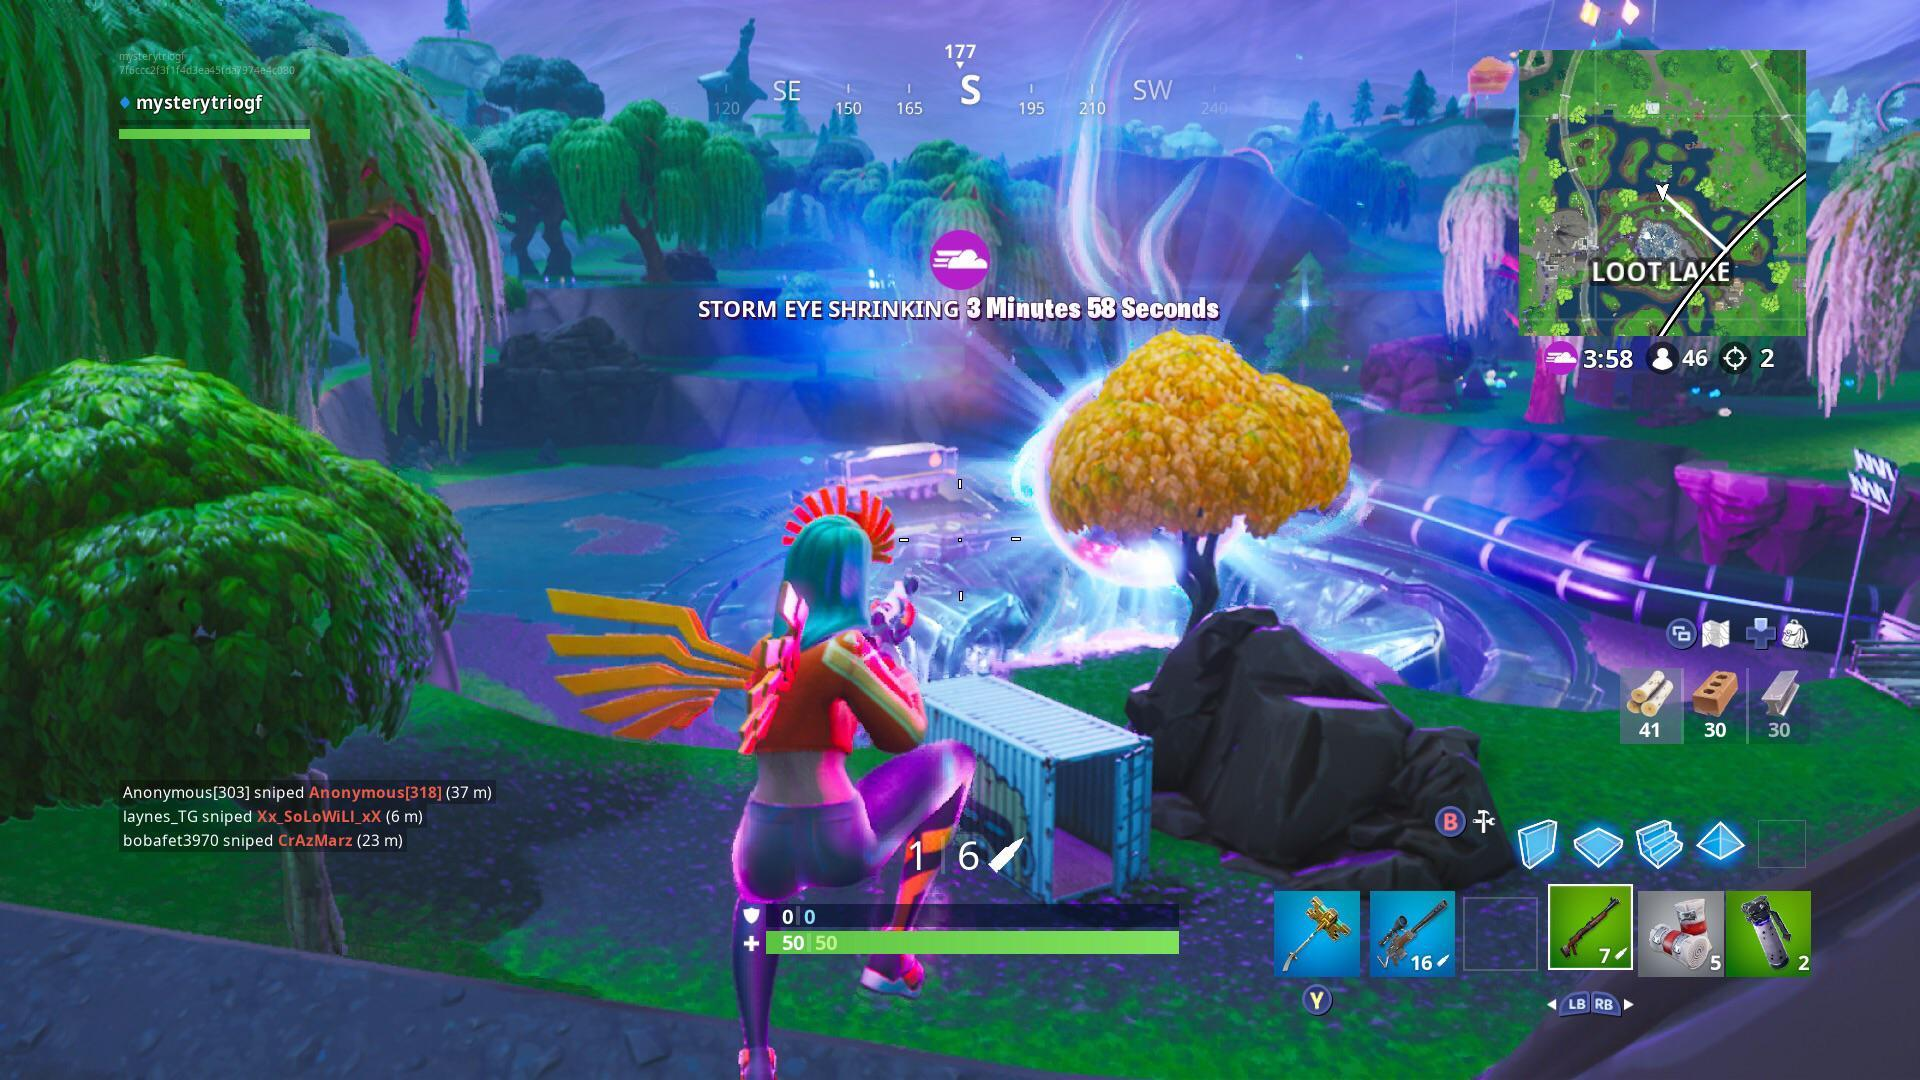 The Zero Point Is Starting To Warp Time The Tree Next To The Vault Has Changed To Autumn R Fortnitebr Fortnite Know Your Meme